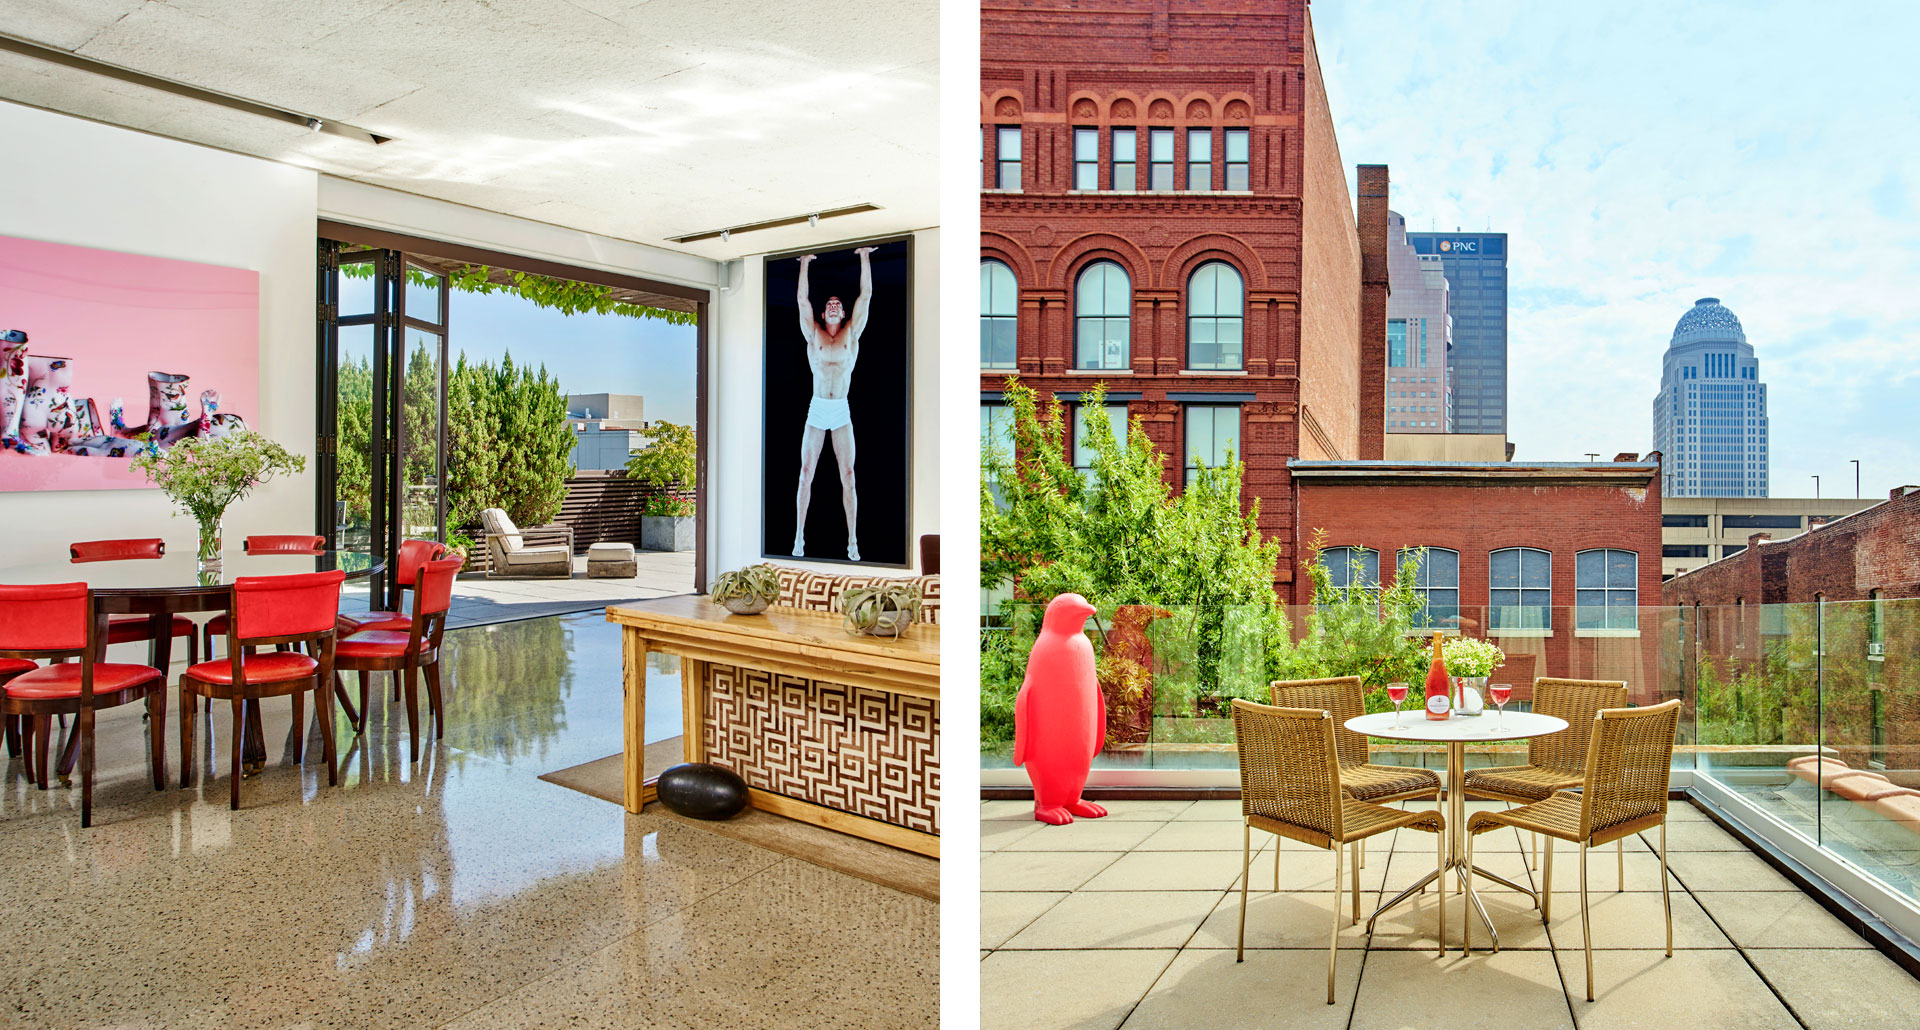 21c Museum Hotel Louisville - boutique hotel in Louisville